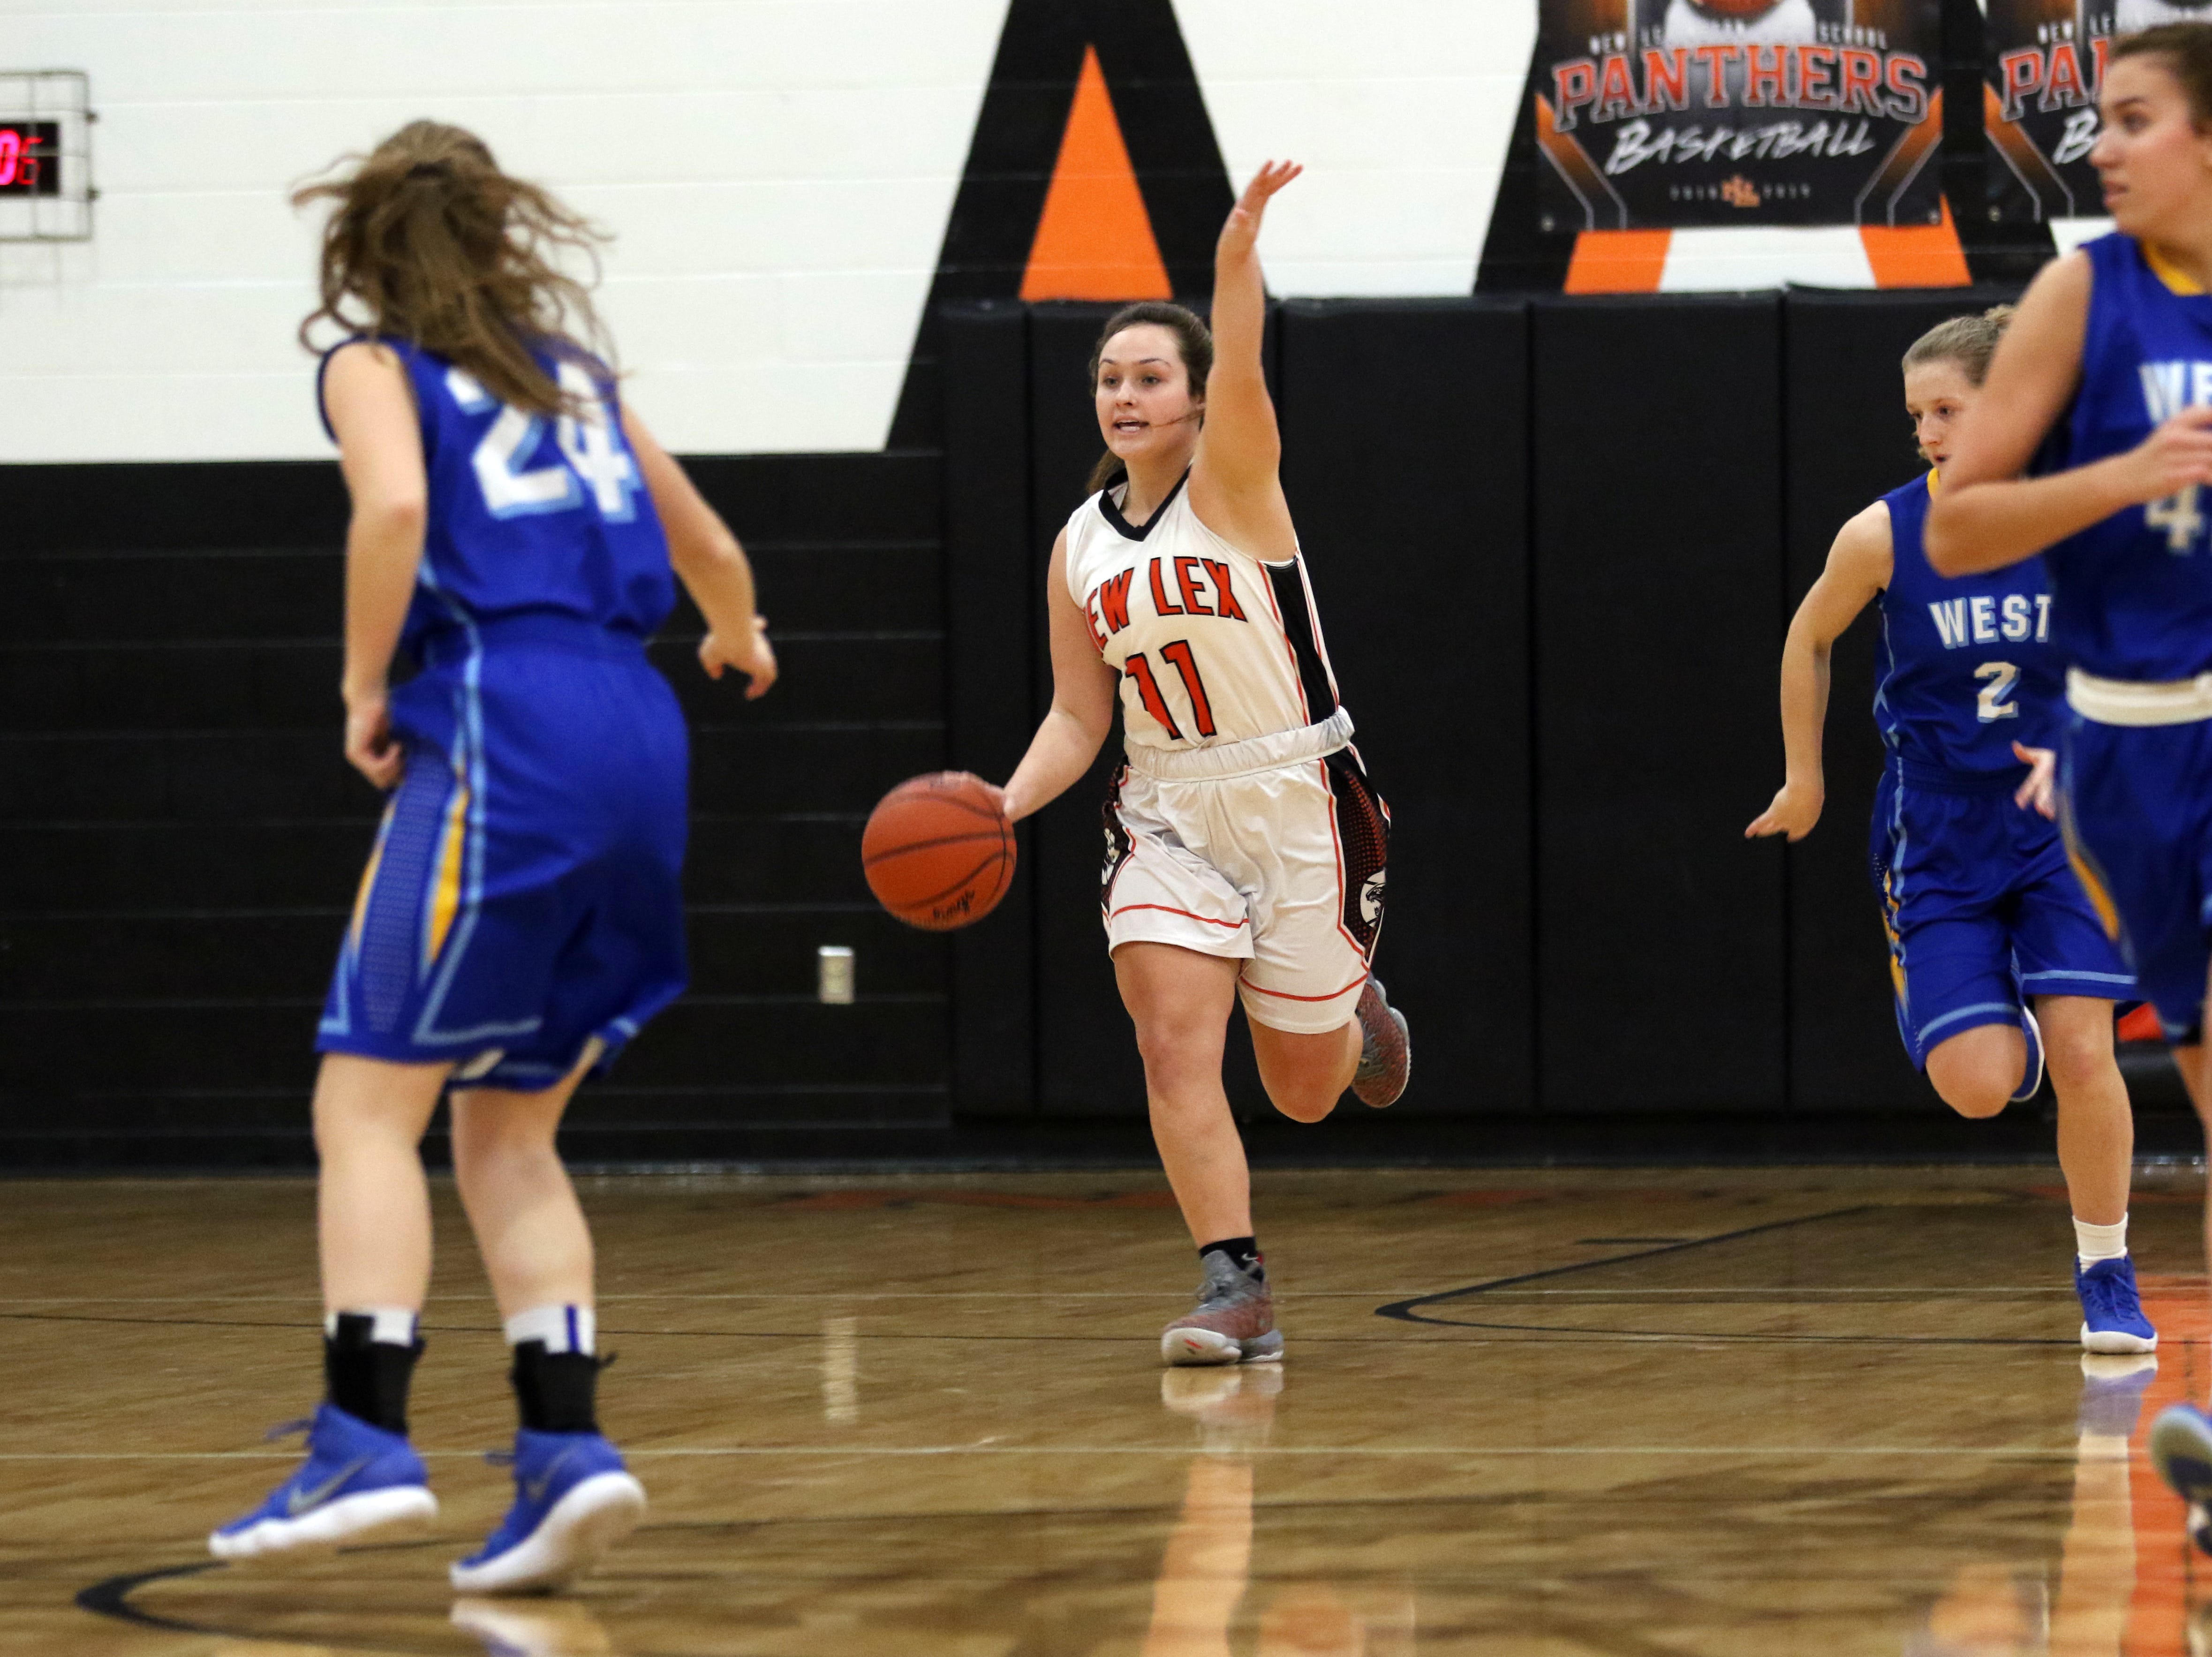 New Lexington's Haleigh Sammons calls a play against West Muskingum.